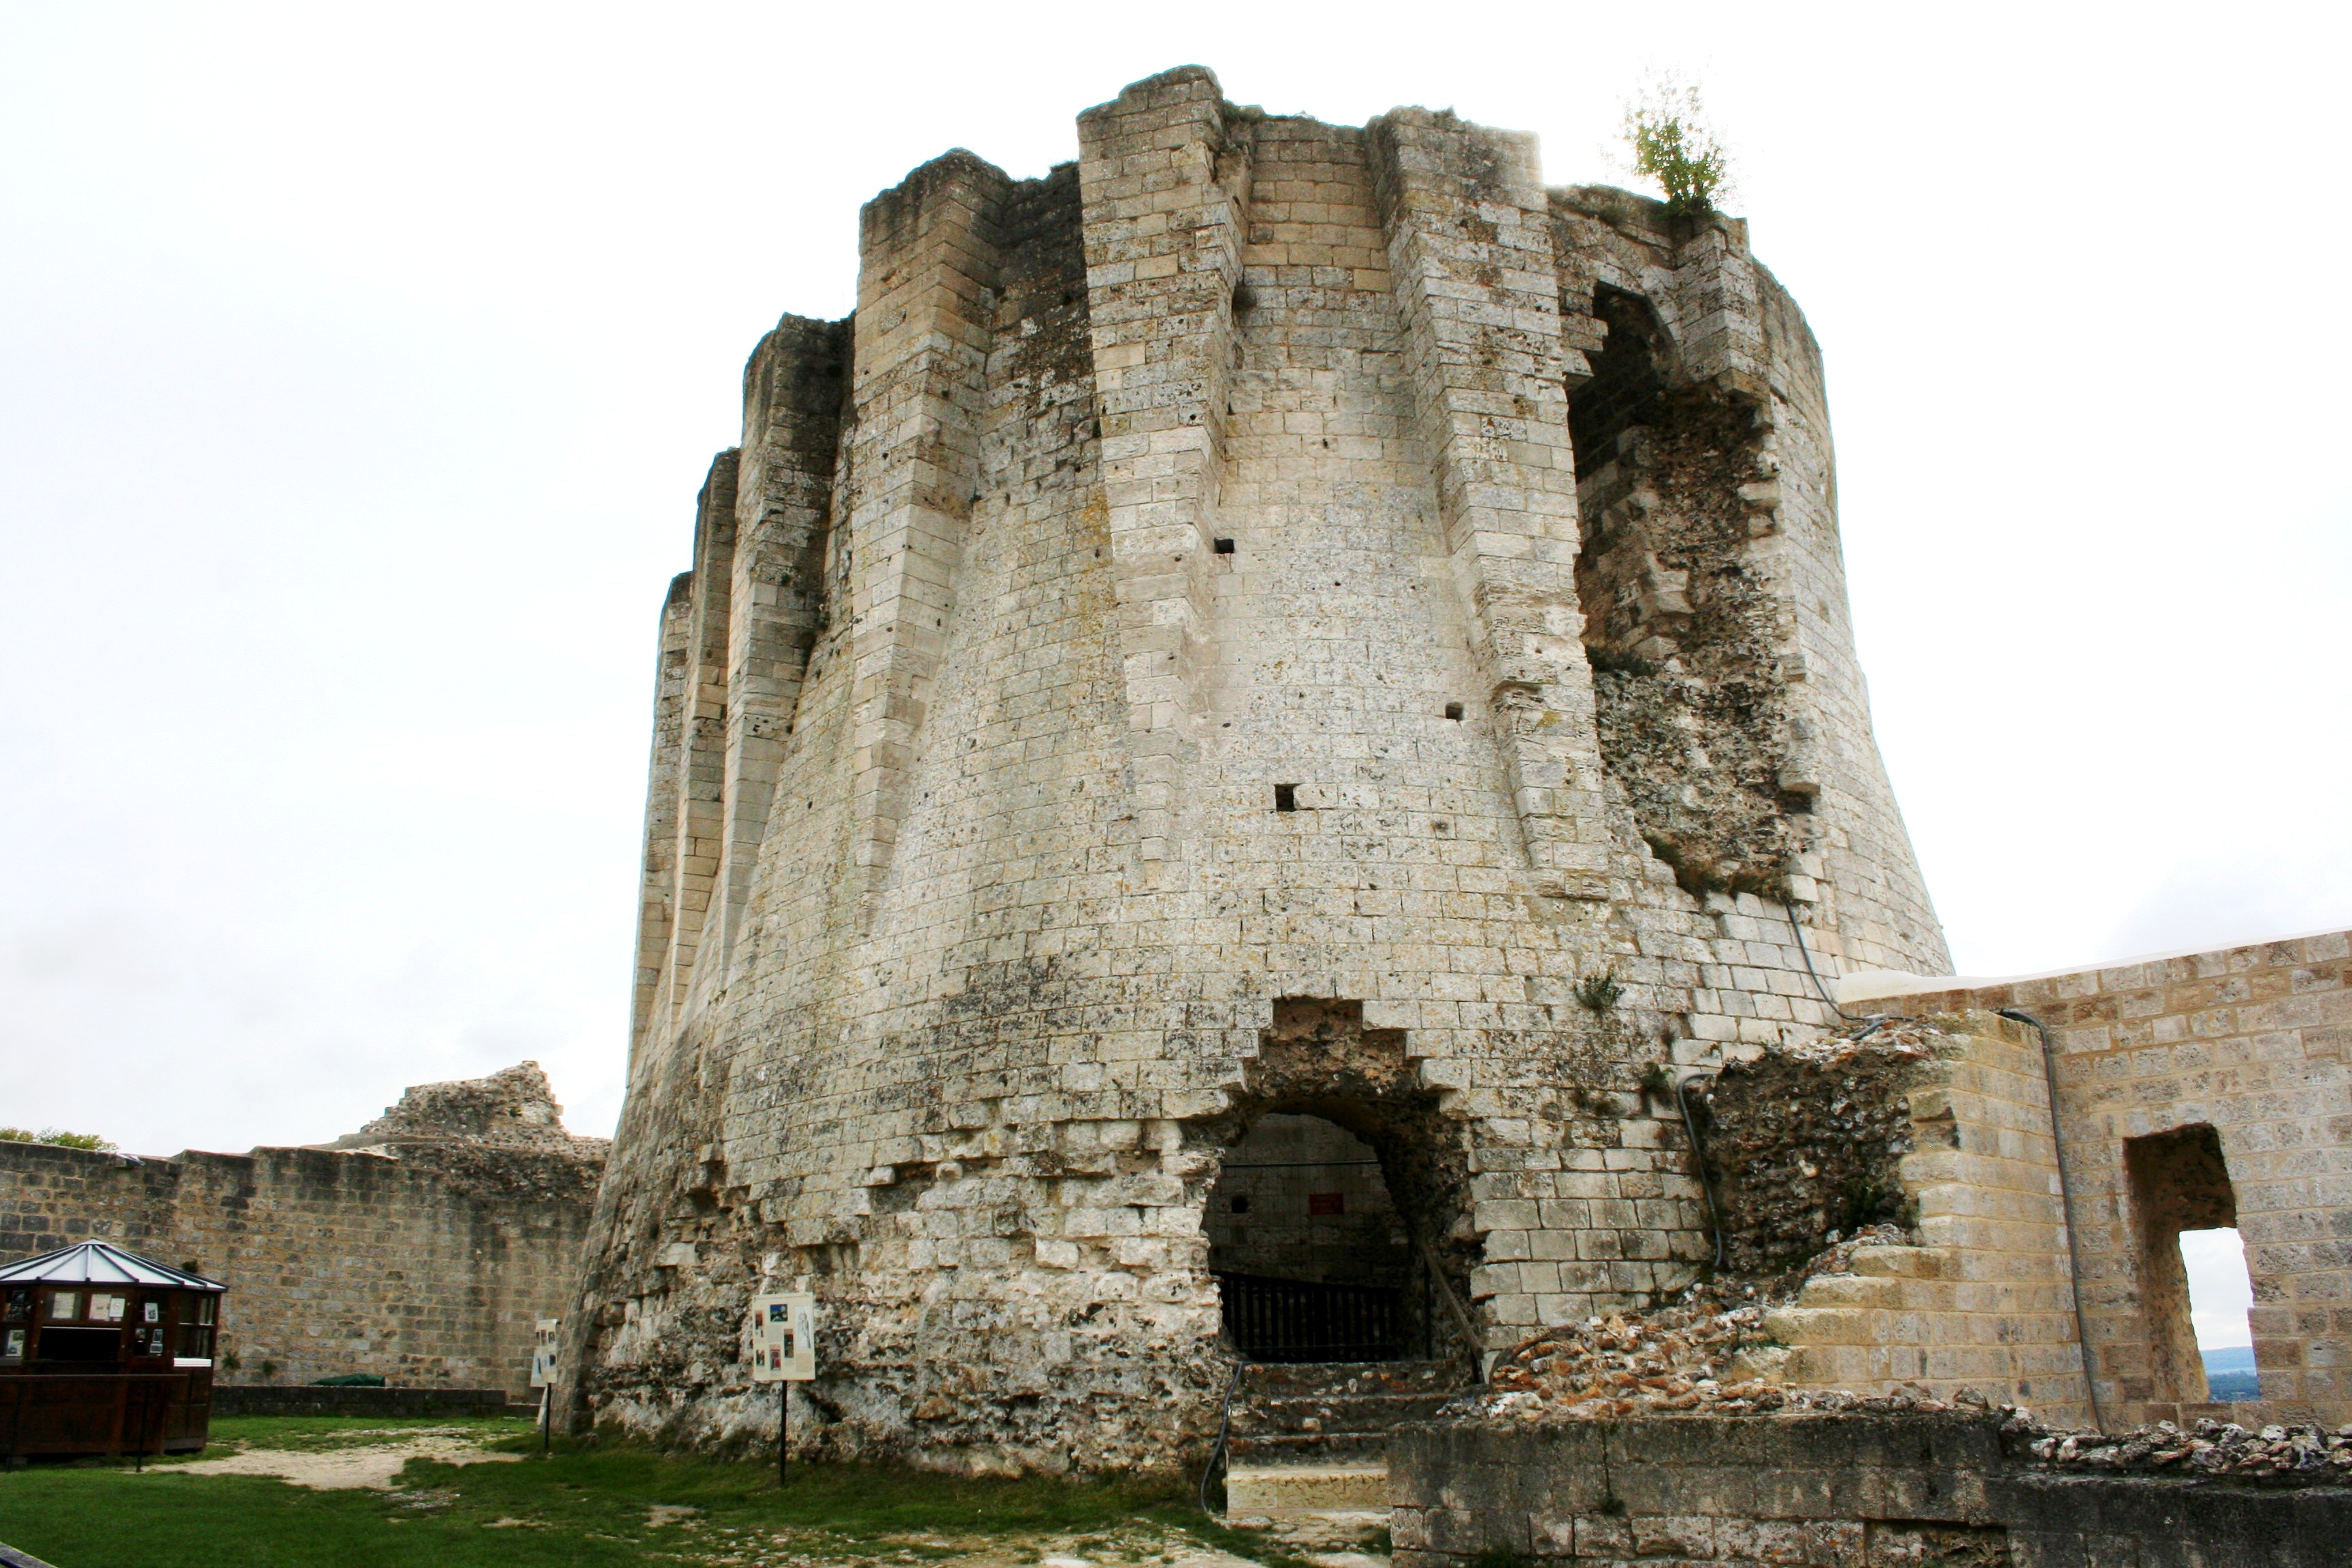 Chateau Gaillard Main Keep